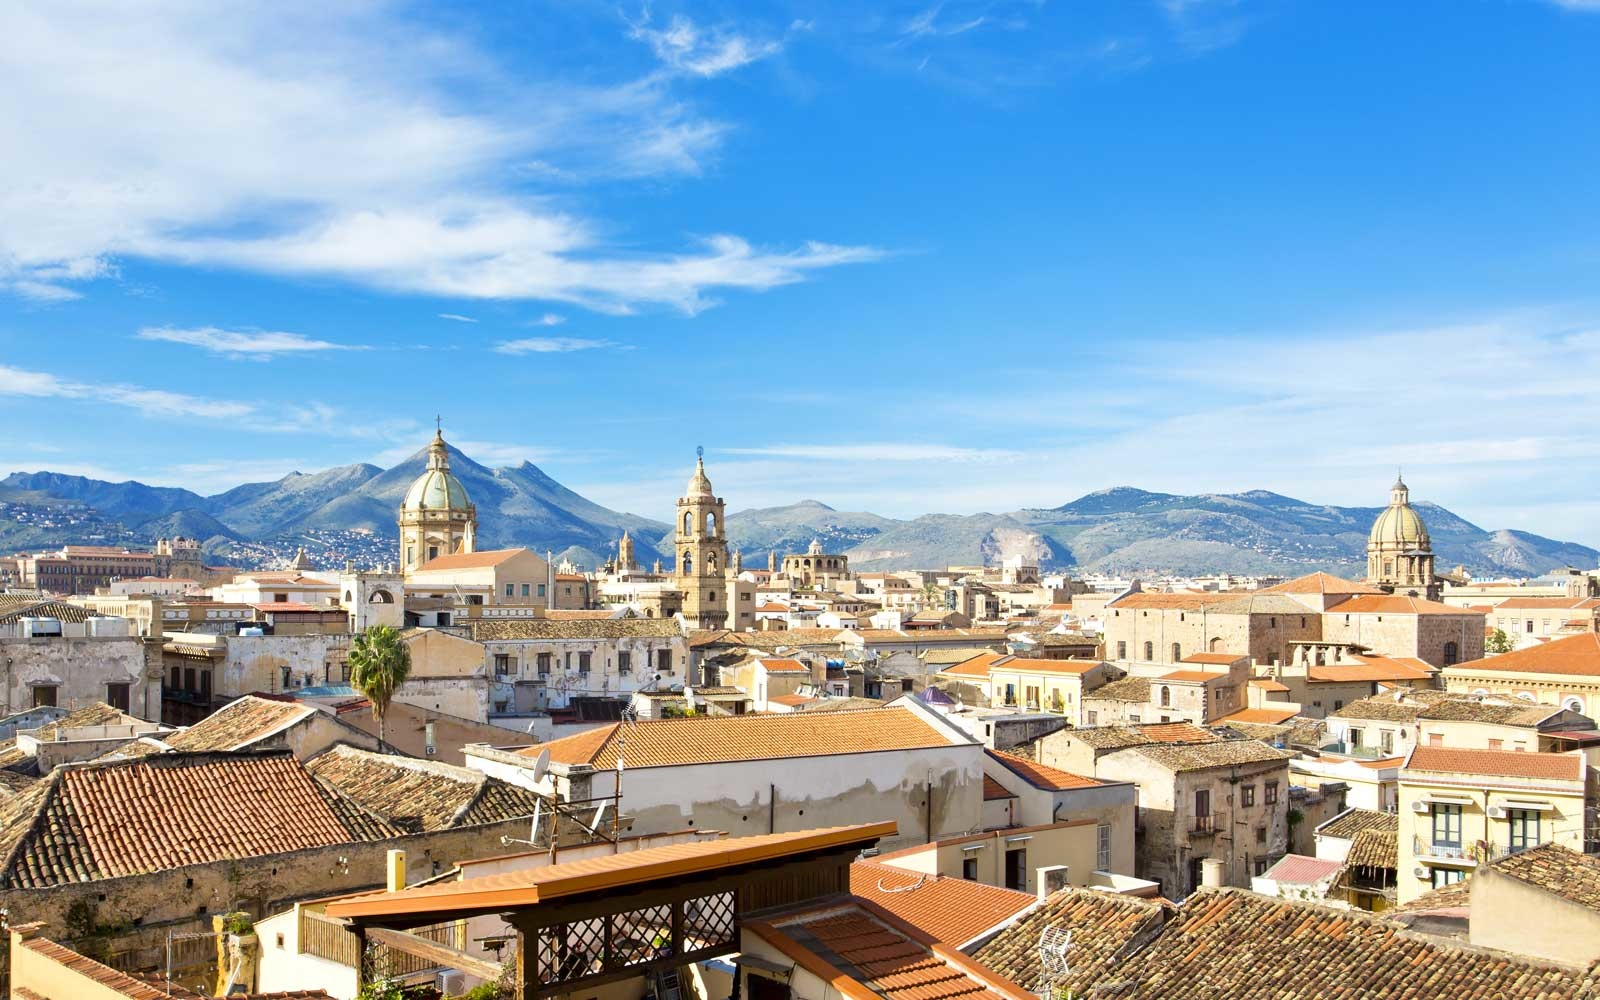 Panorama of the city of Palermo, view of the old town